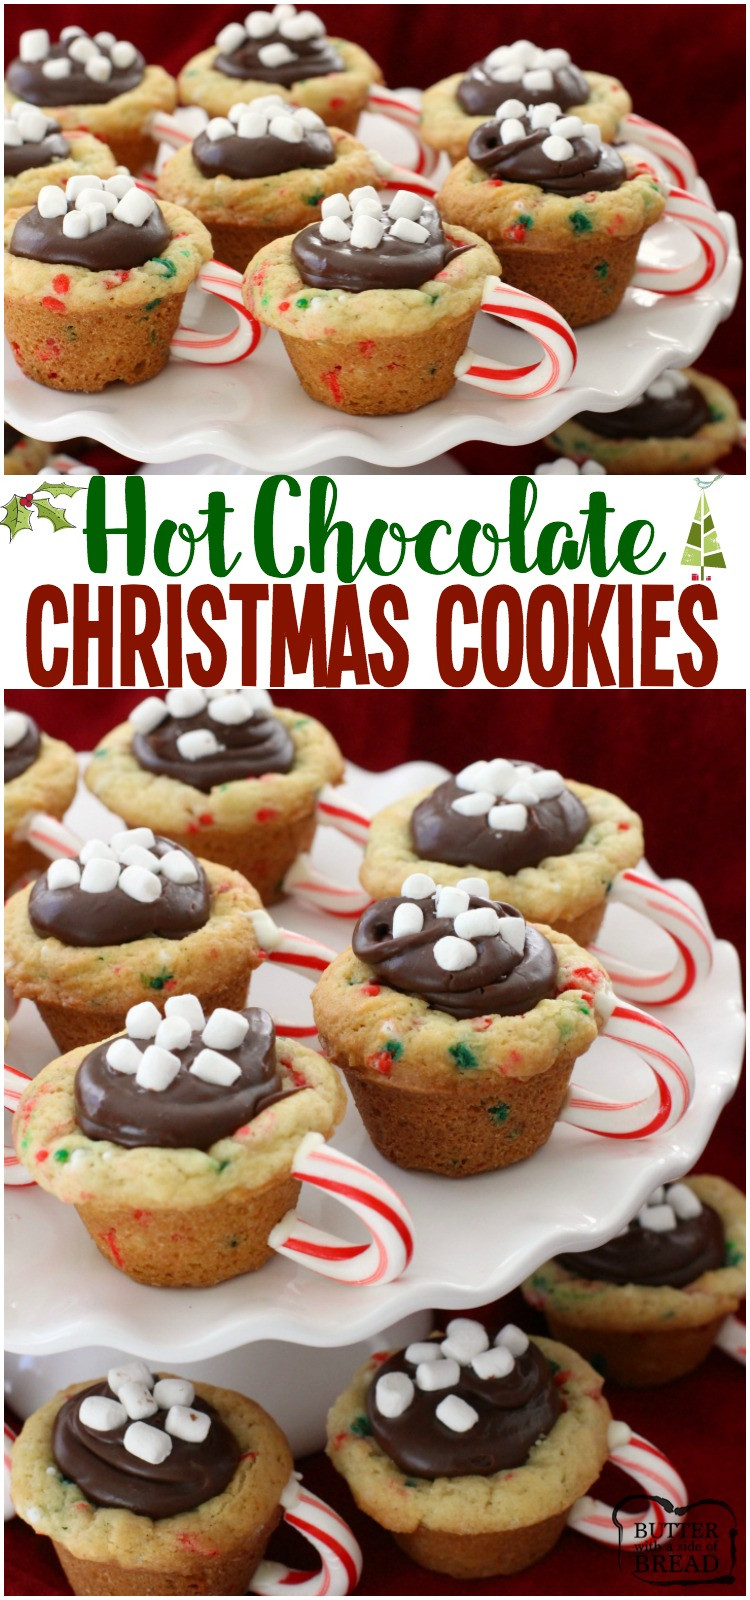 Christmas Chocolate Cookies  HOT CHOCOLATE CHRISTMAS COOKIES Butter with a Side of Bread